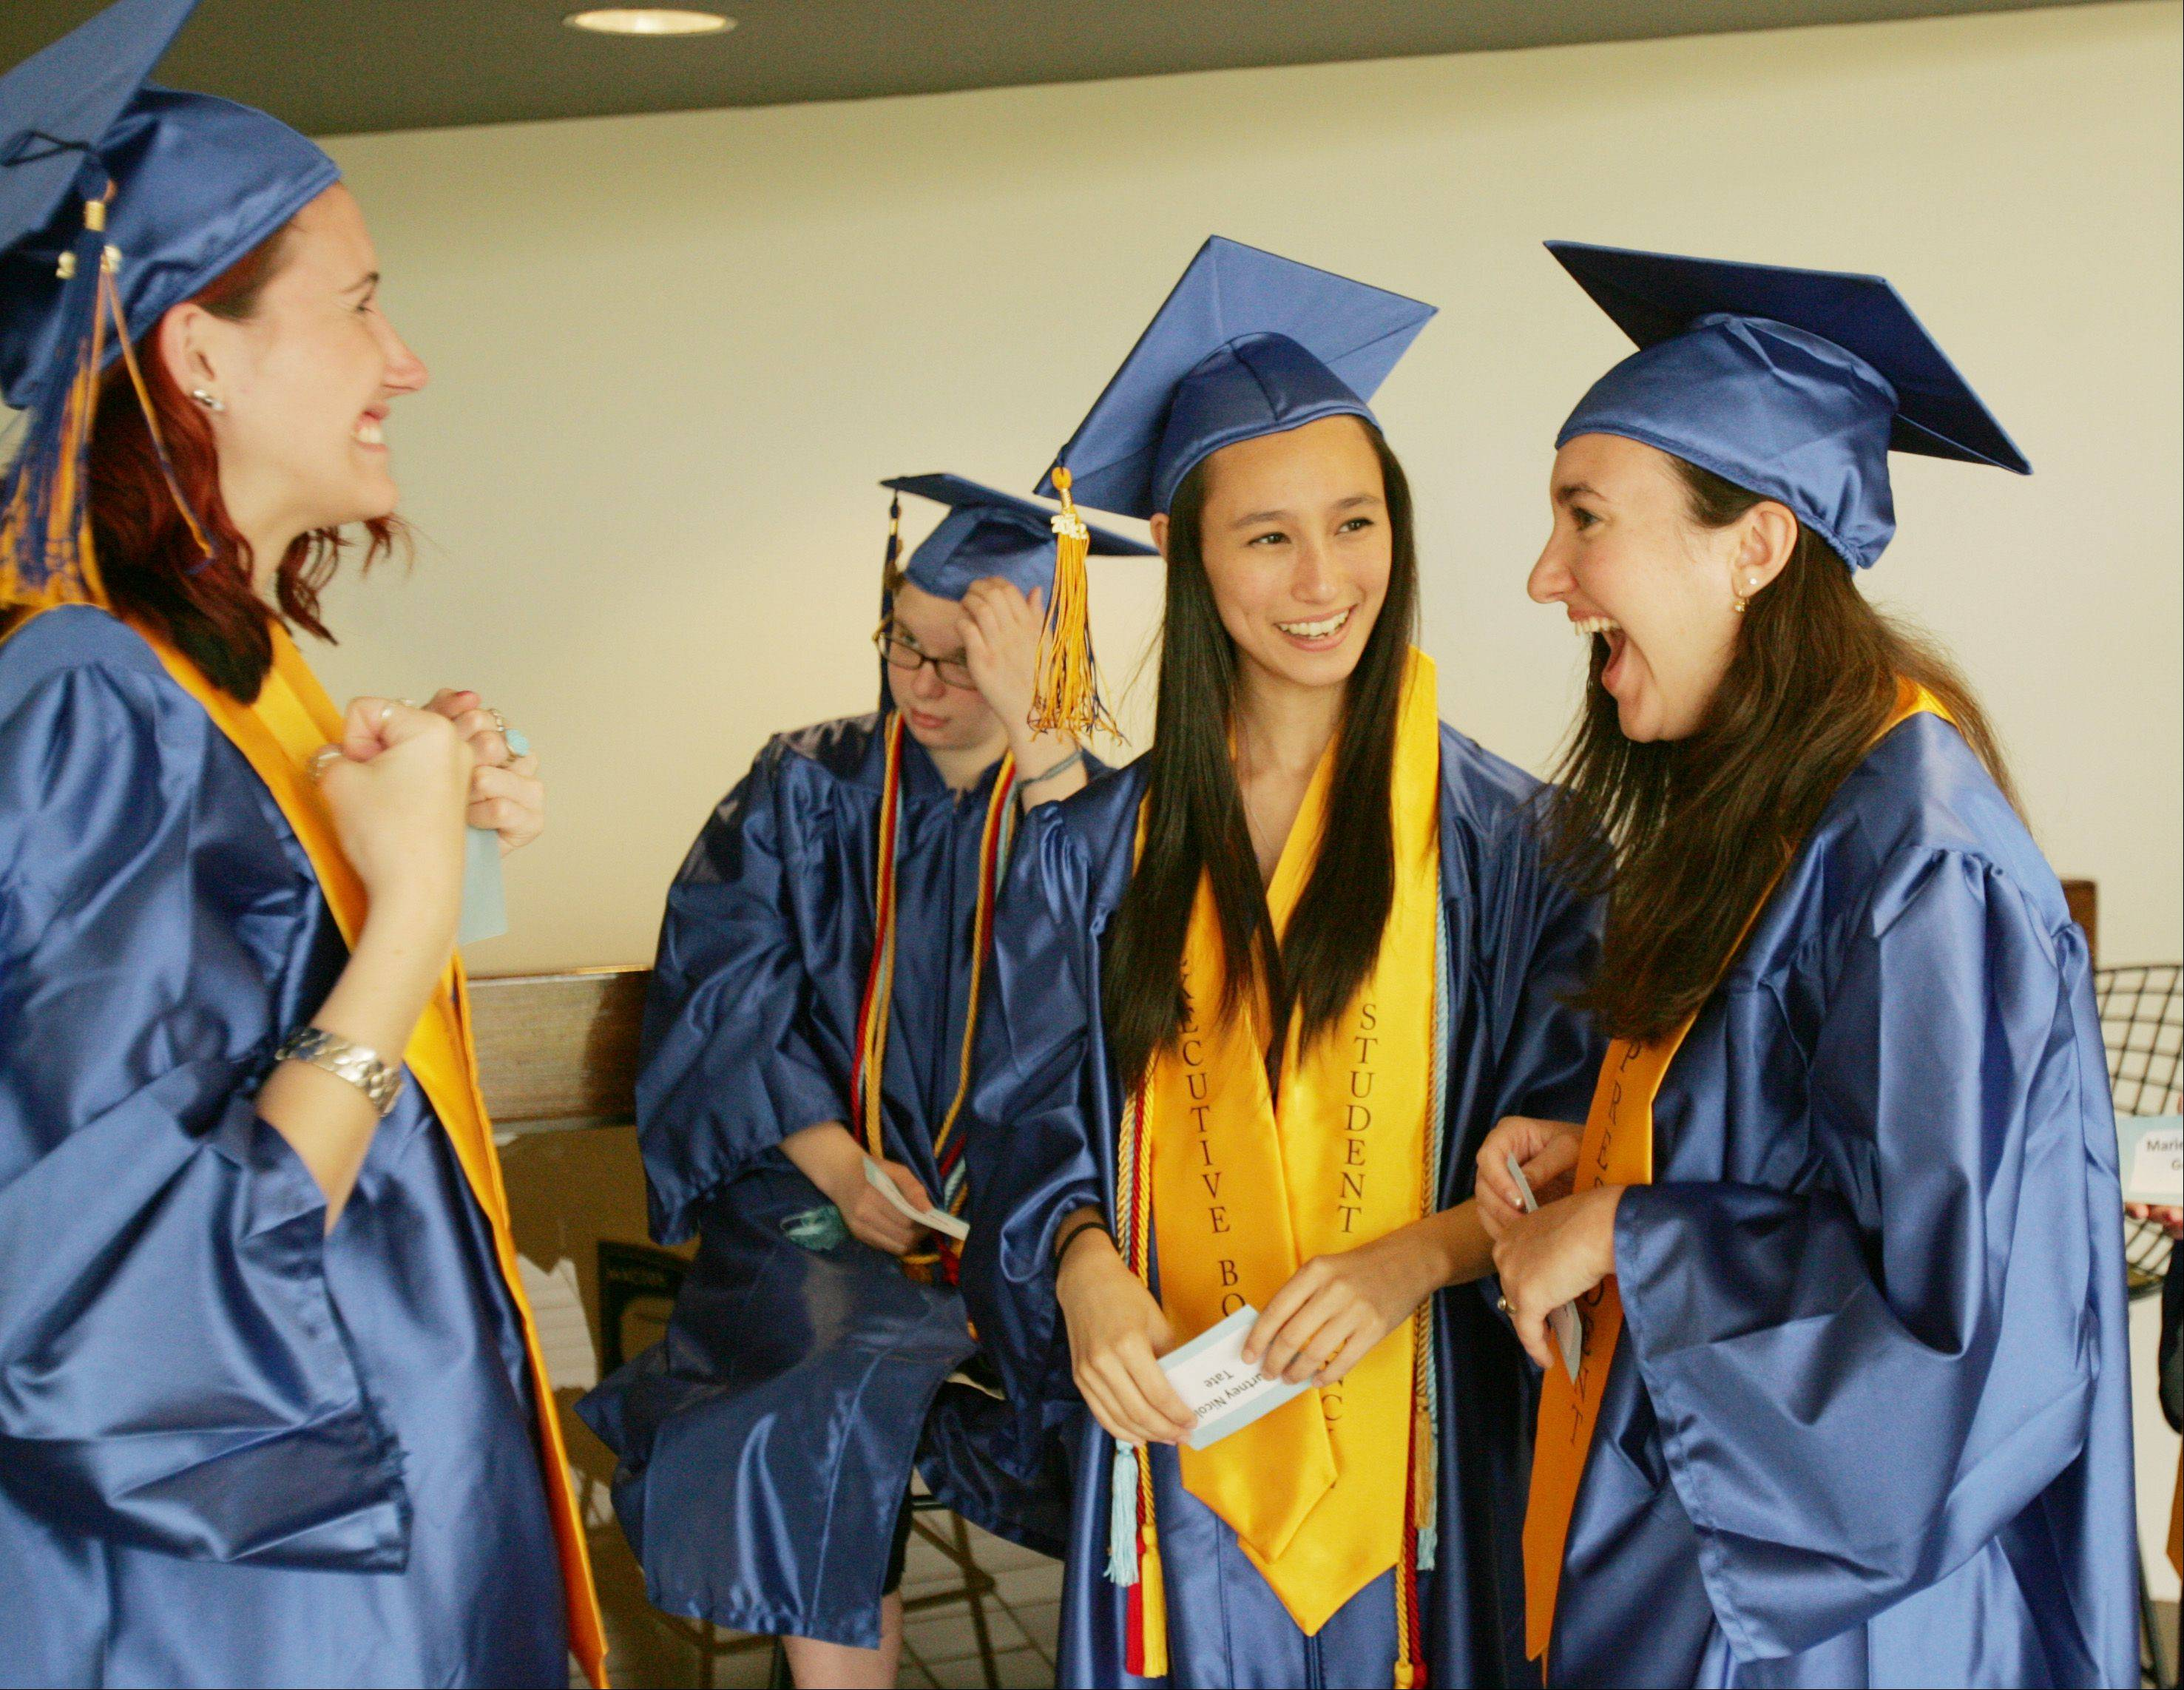 Jonna Sekowski, left, and Courtney Tate, center, along with Senior Class President Allison Schultz, right, talk before their 2012 Wheaton North High School graduation, held at College of DuPage in Glen Ellyn.